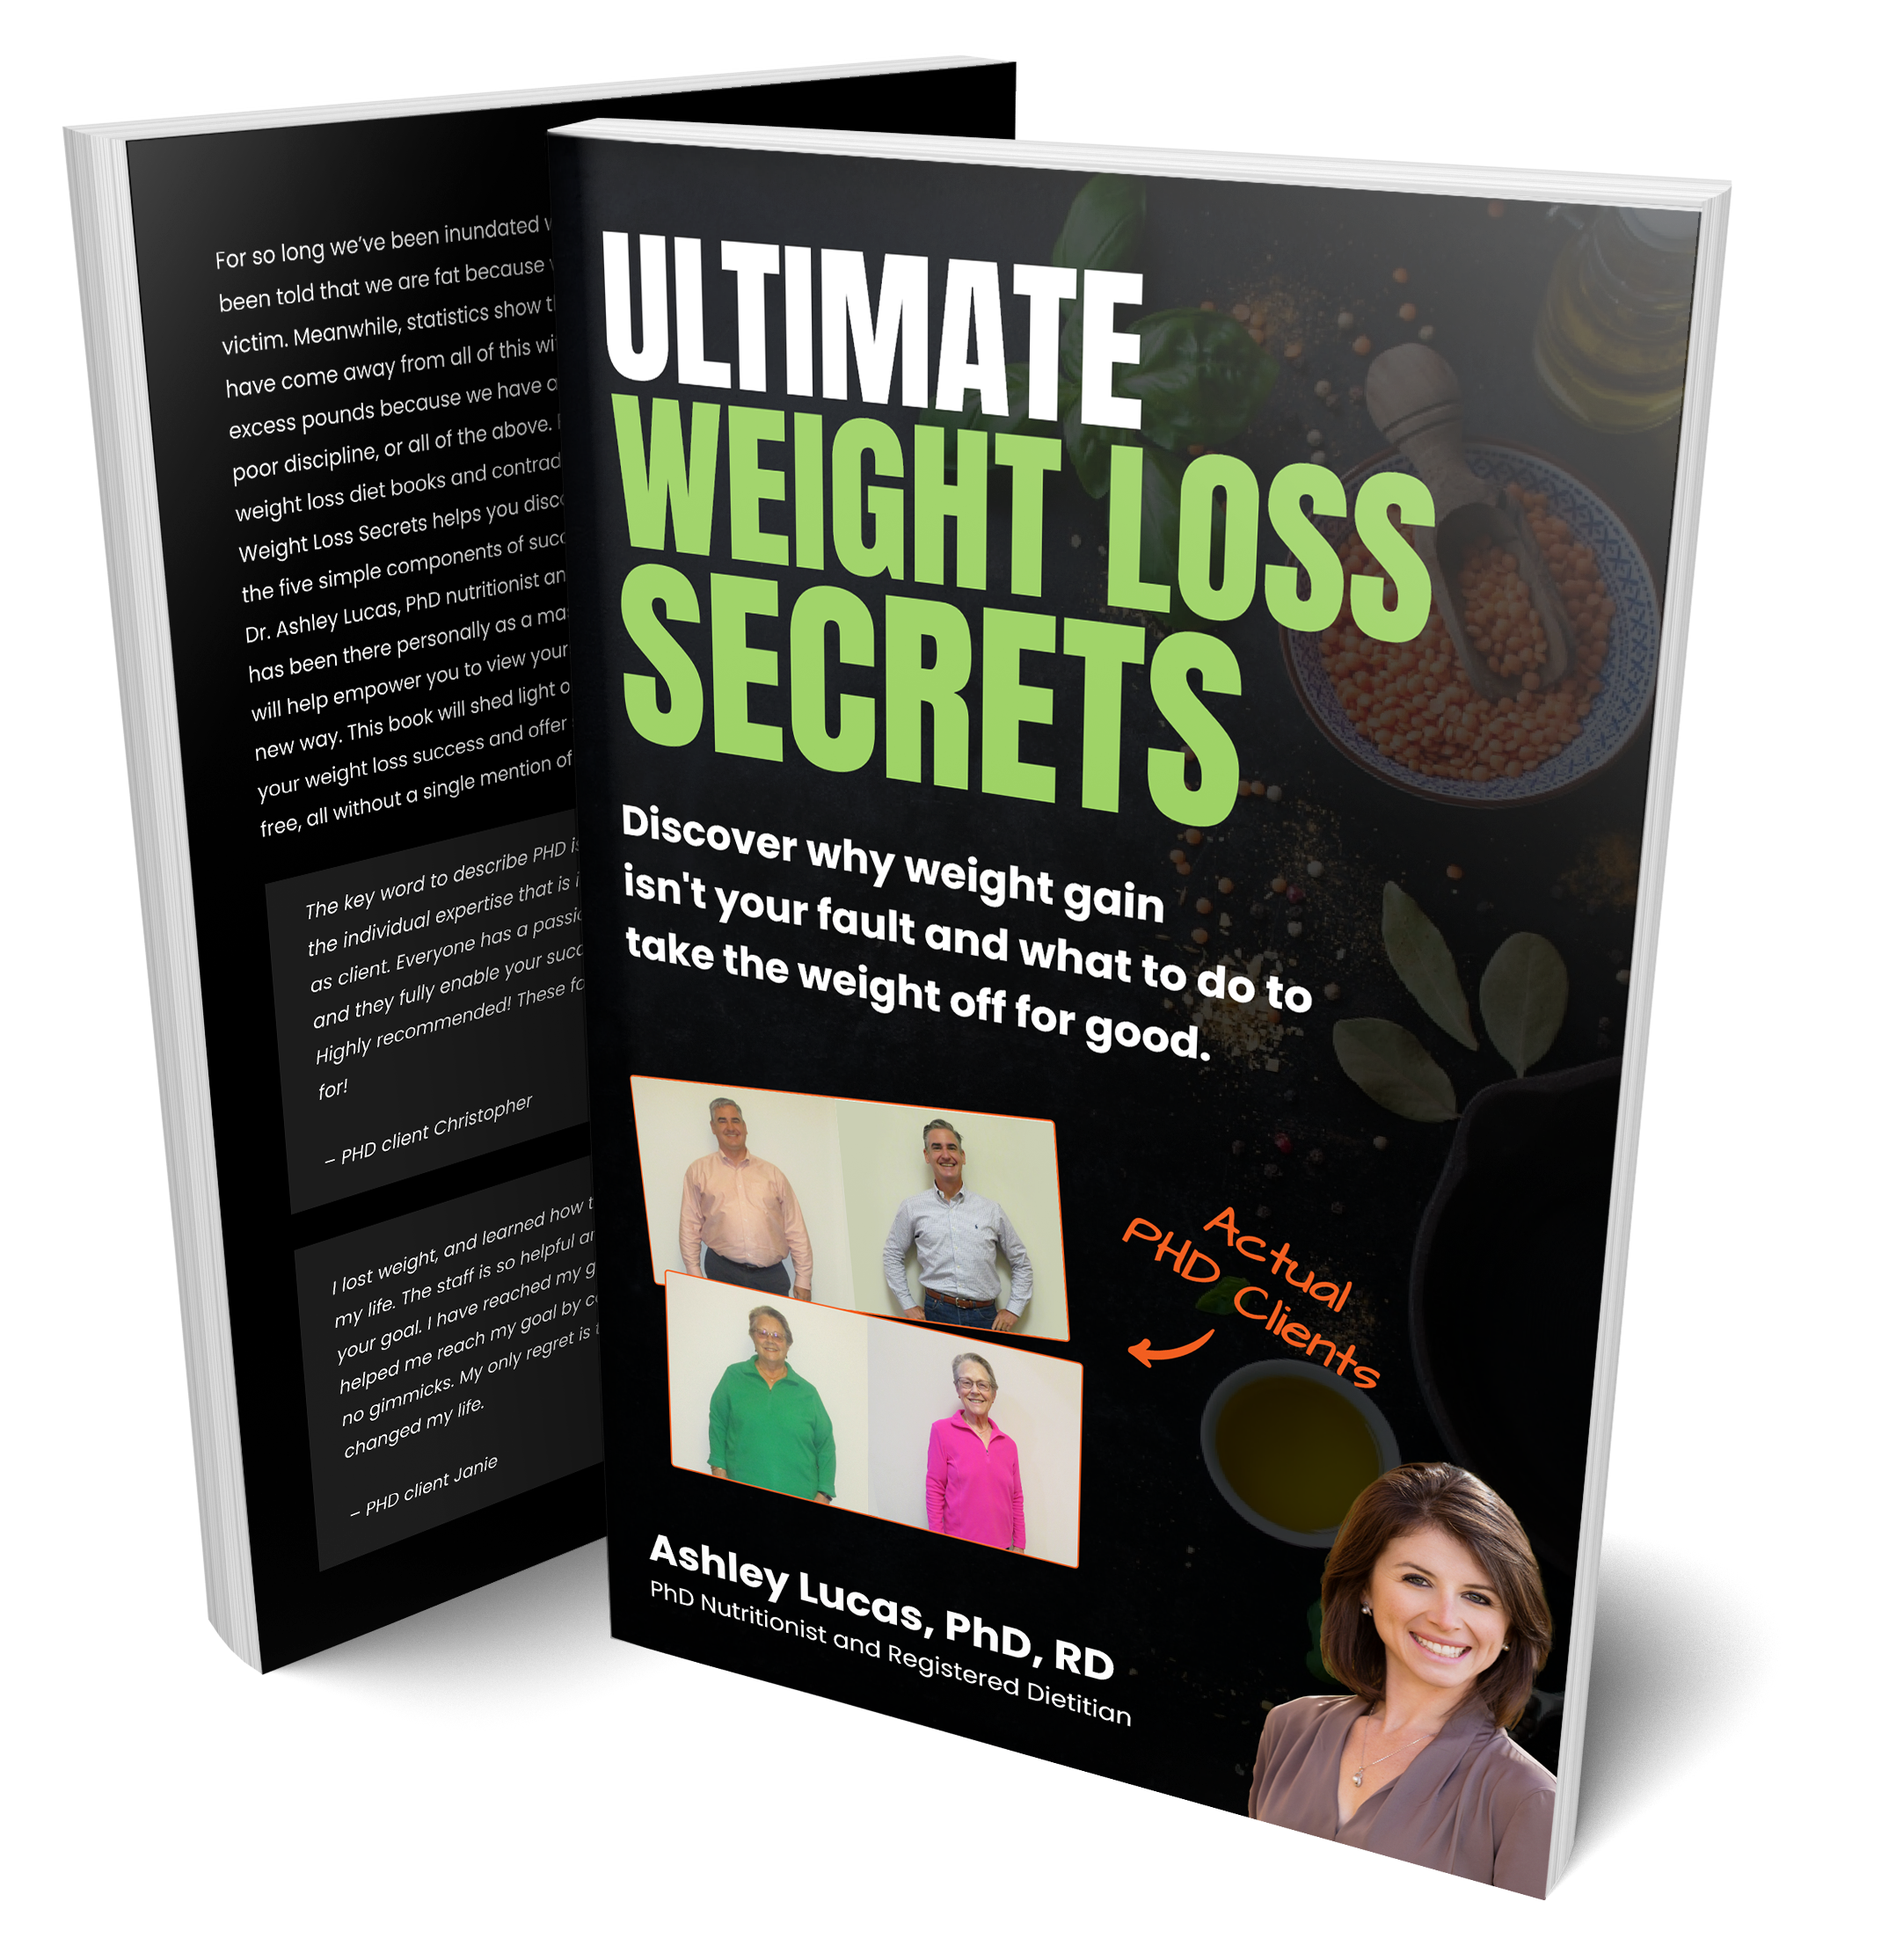 Ultimate Weight Loss Secrets Book Cover Front and Back